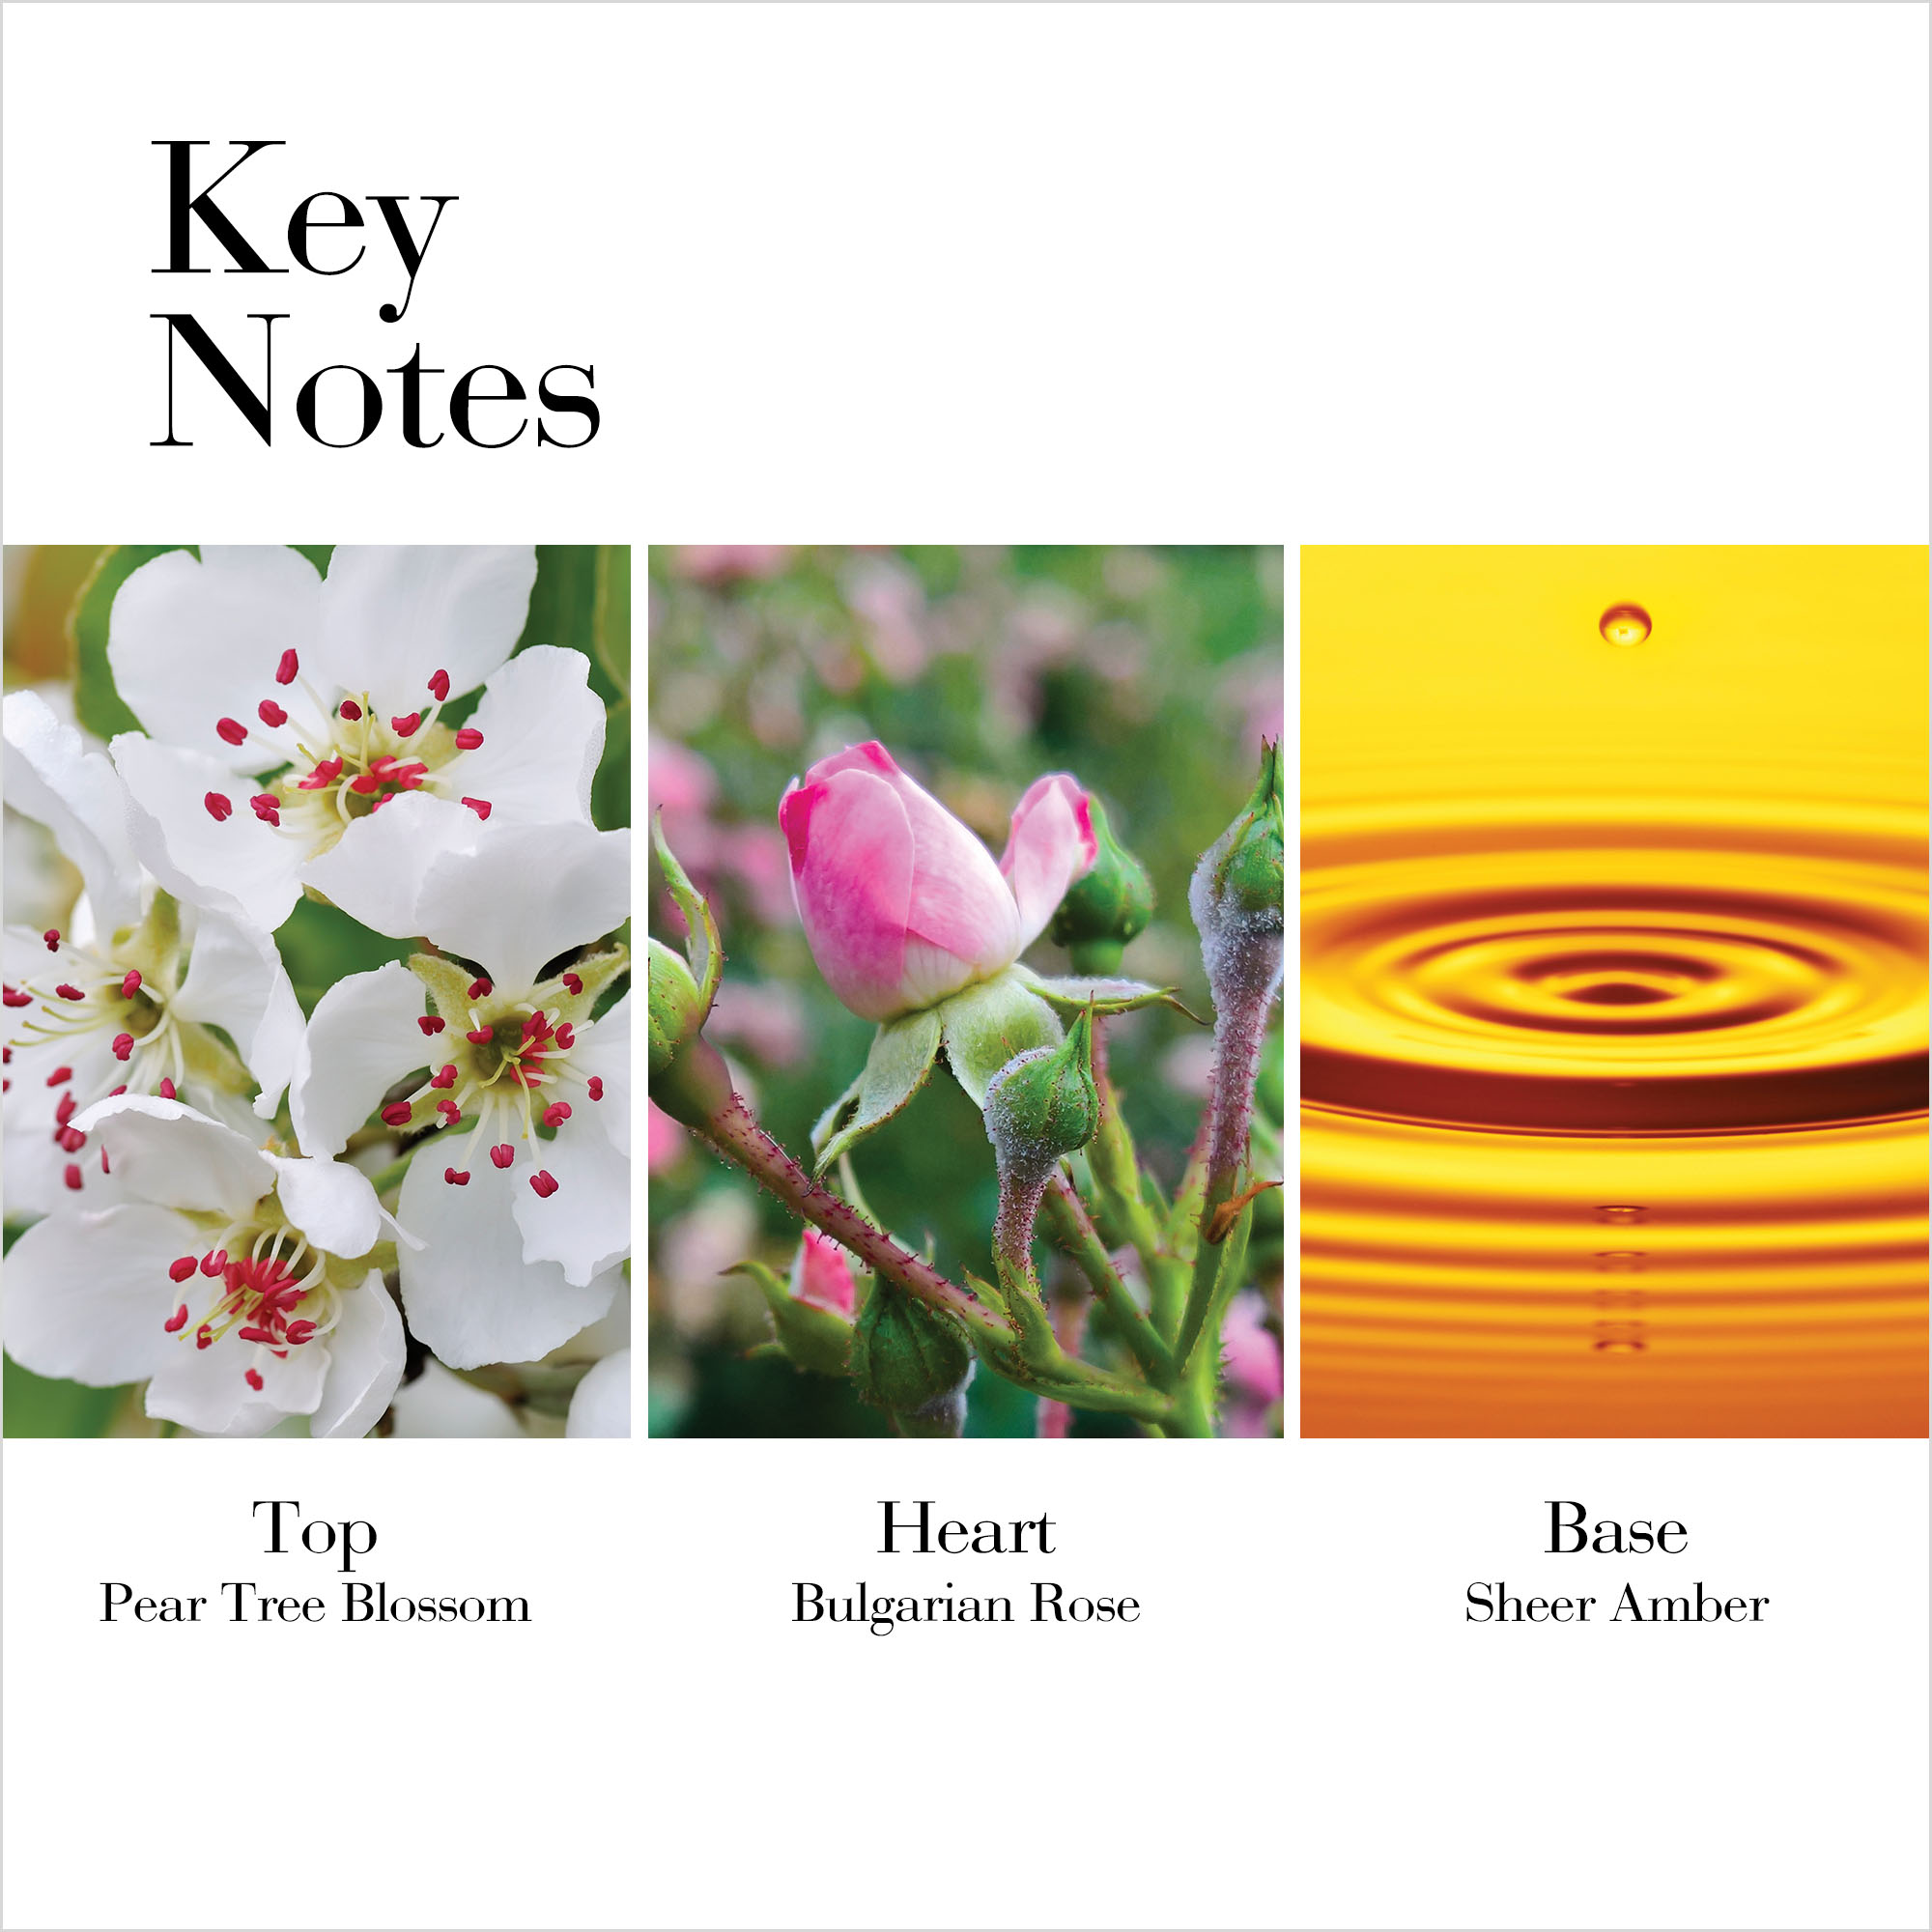 Key Notes: Top Pear Tree Blossom, Heart Bulgarian Rose, Base Sheer Amber